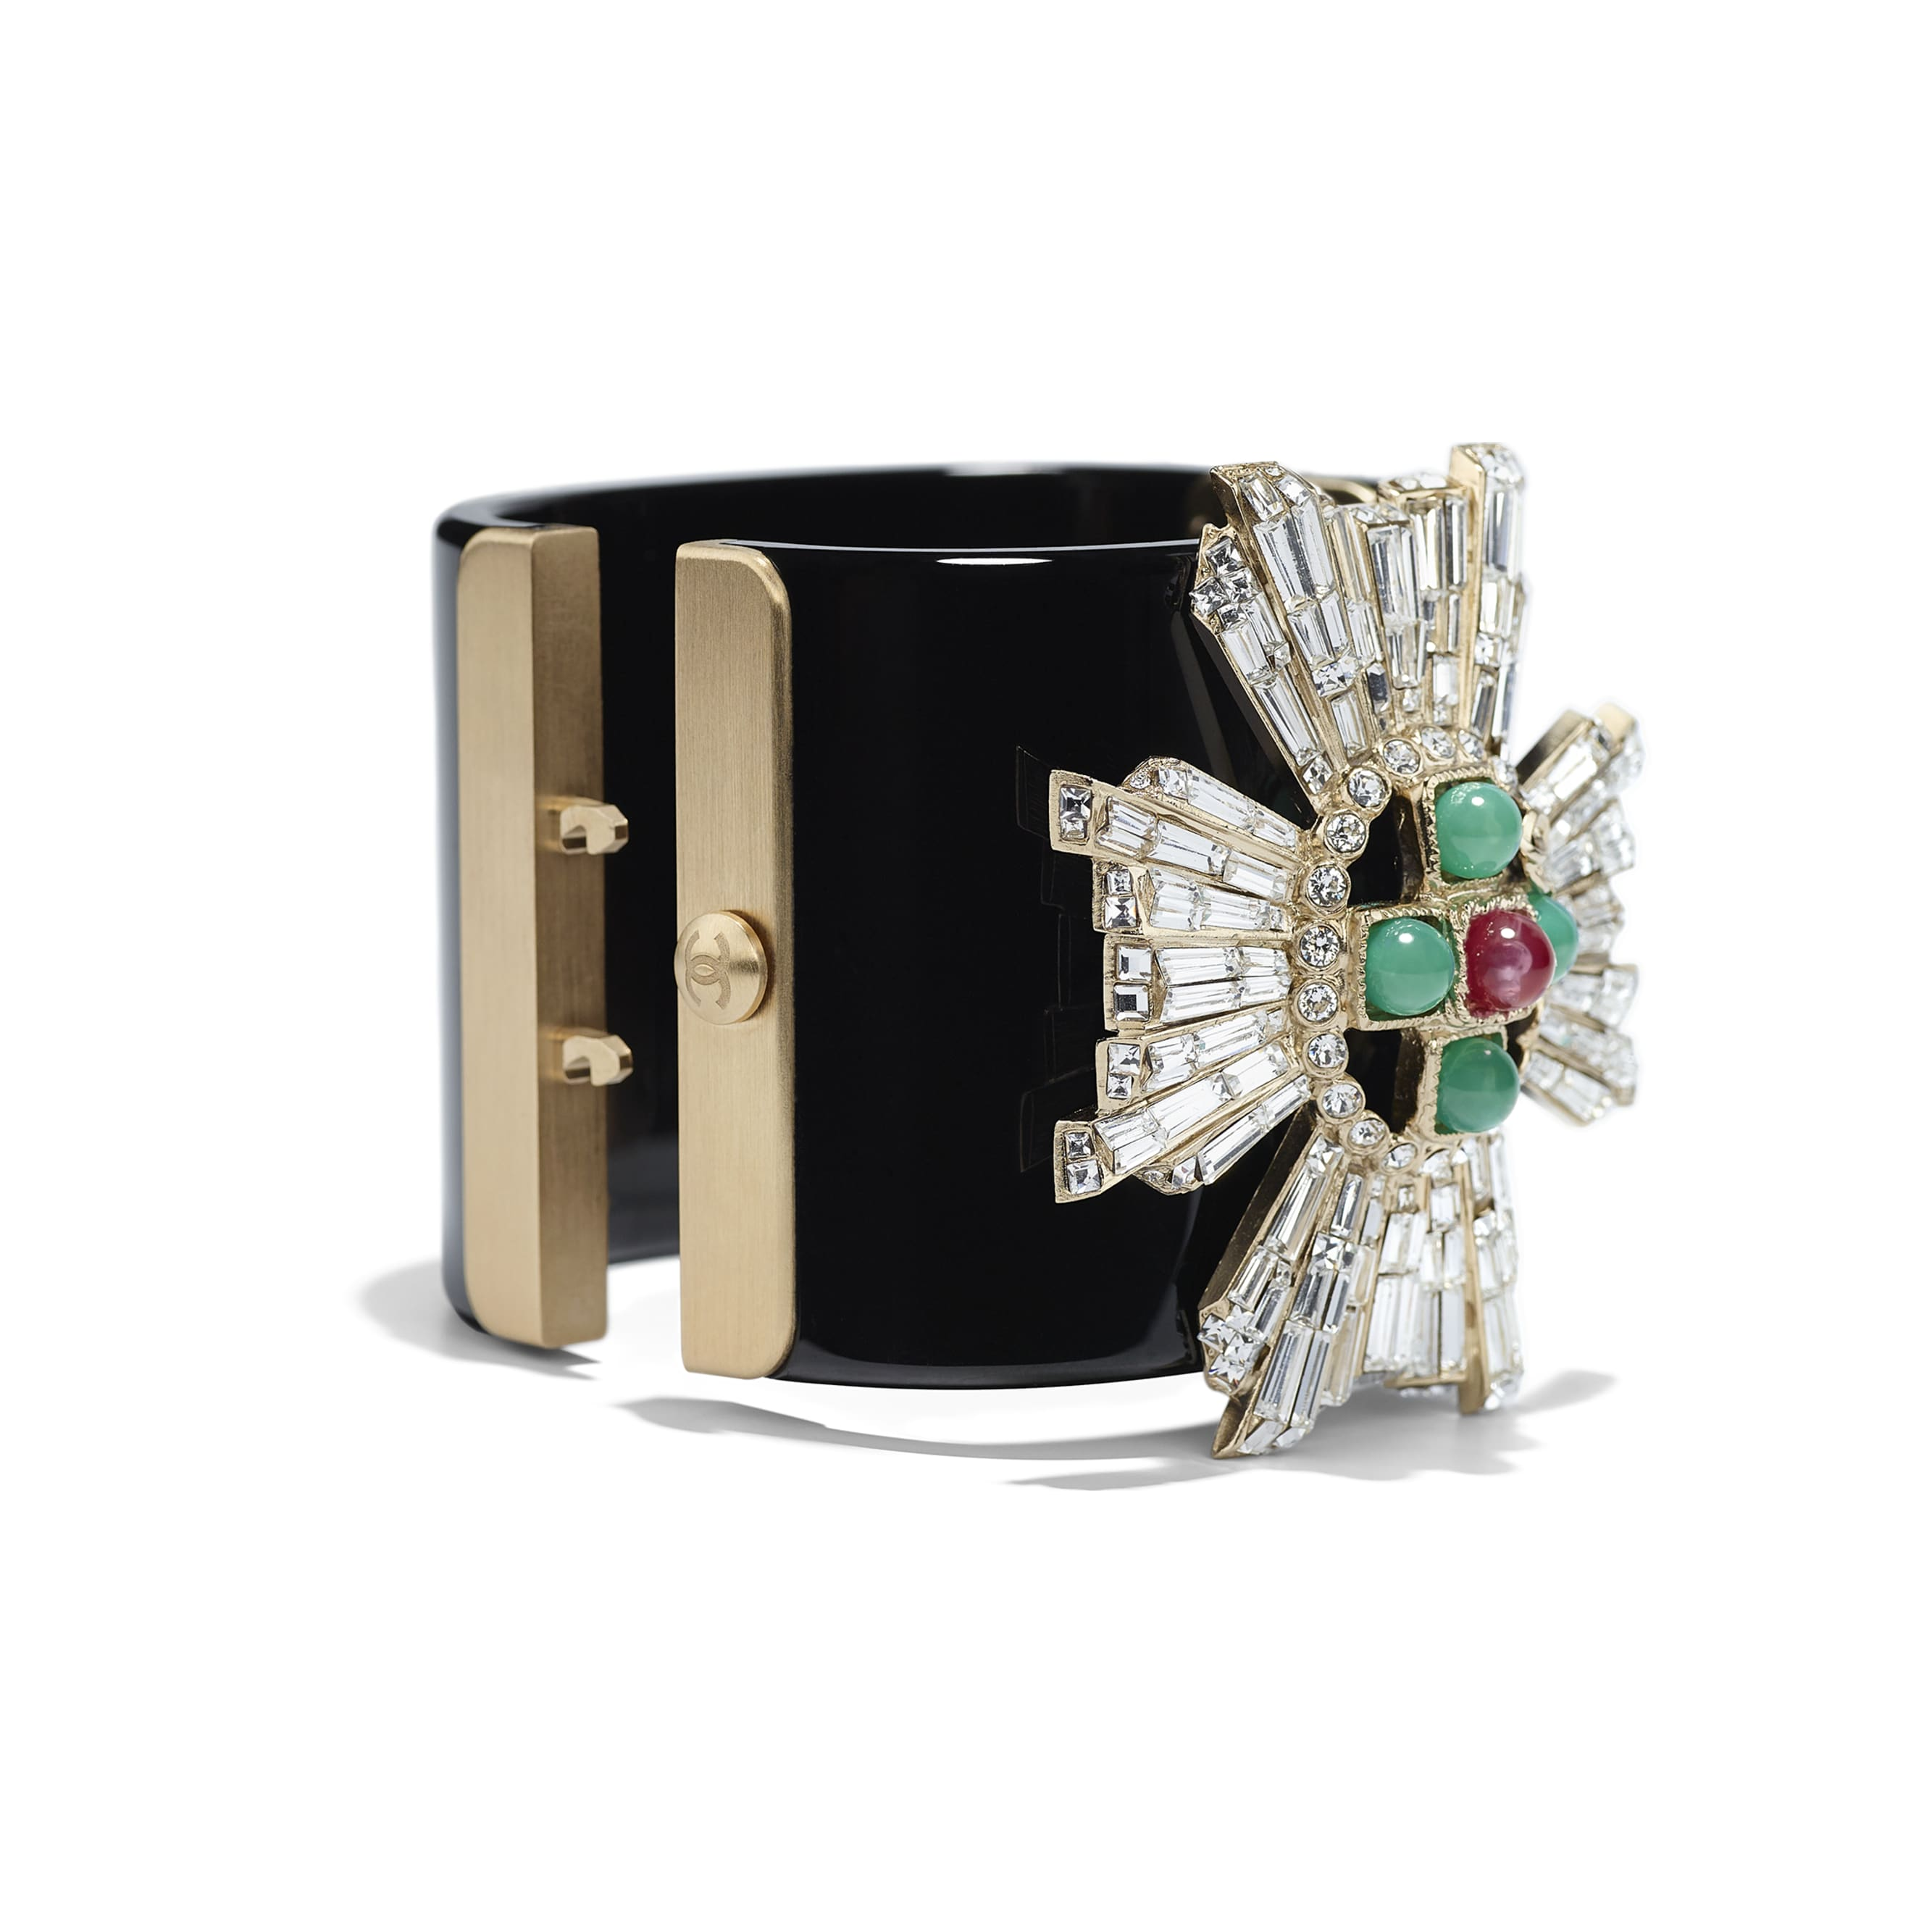 Cuff - Black, Green, Pink, Crystal & Gold - Resin, Glass Pearls, Strass & Metal - CHANEL - Alternative view - see standard sized version